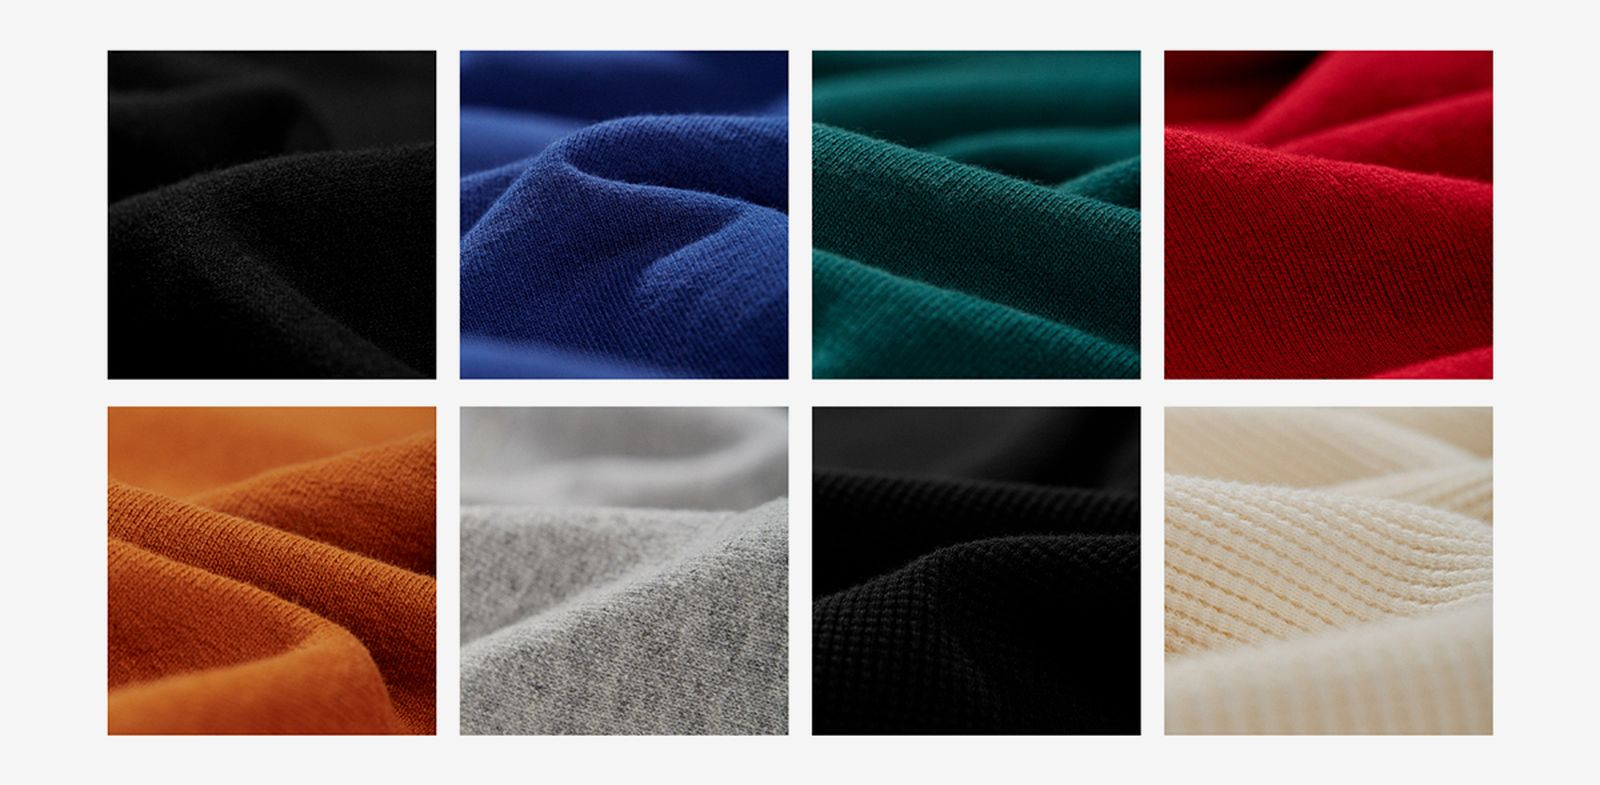 Aimé Leon Dore FW19 Uniform Program fabrics